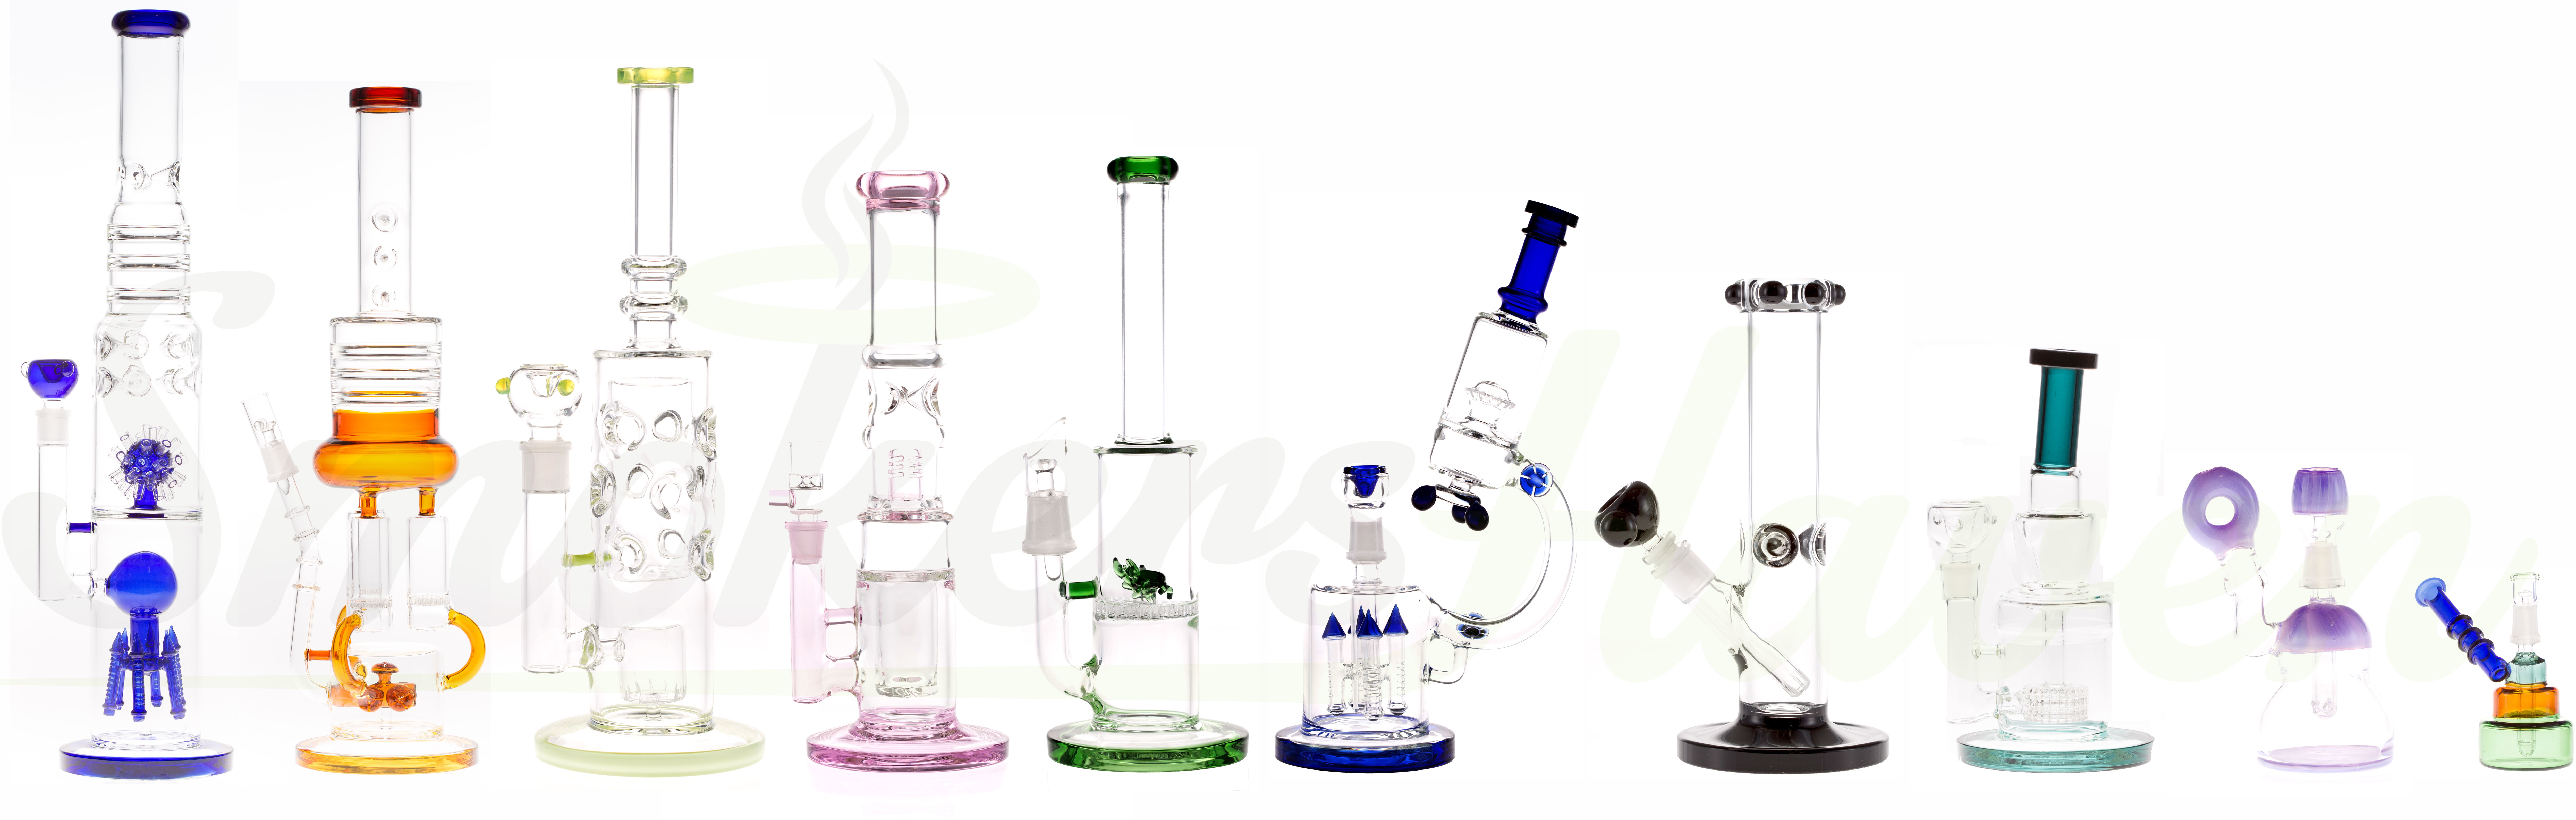 Waterpipes lineup many styles